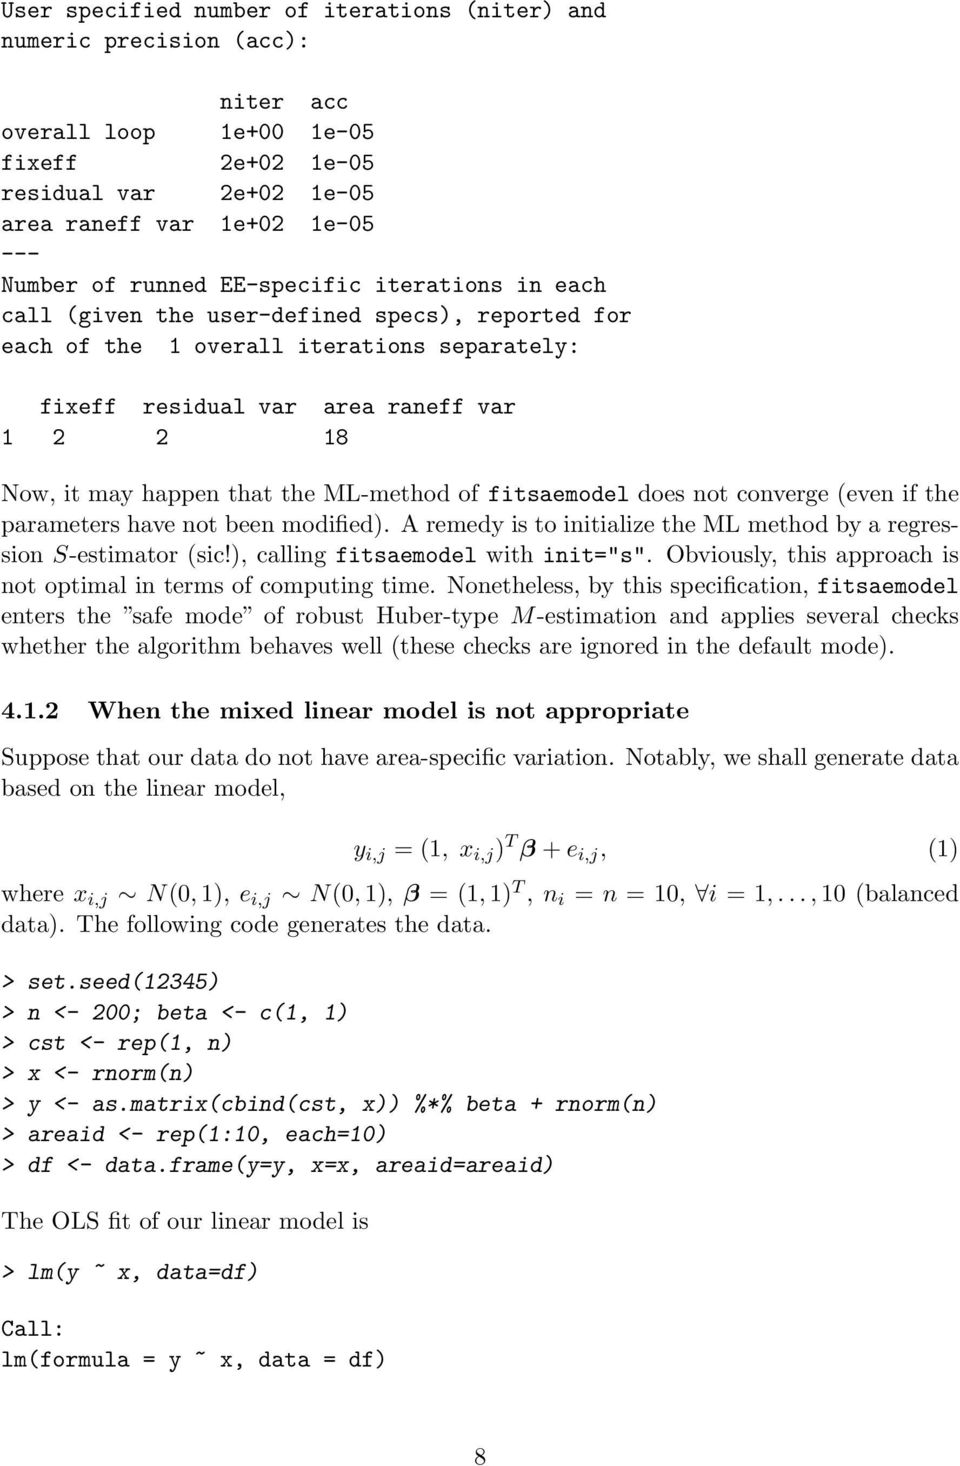 ML-method of fitsaemodel does not converge (even if the parameters have not been modified). A remedy is to initialize the ML method by a regression S-estimator (sic!